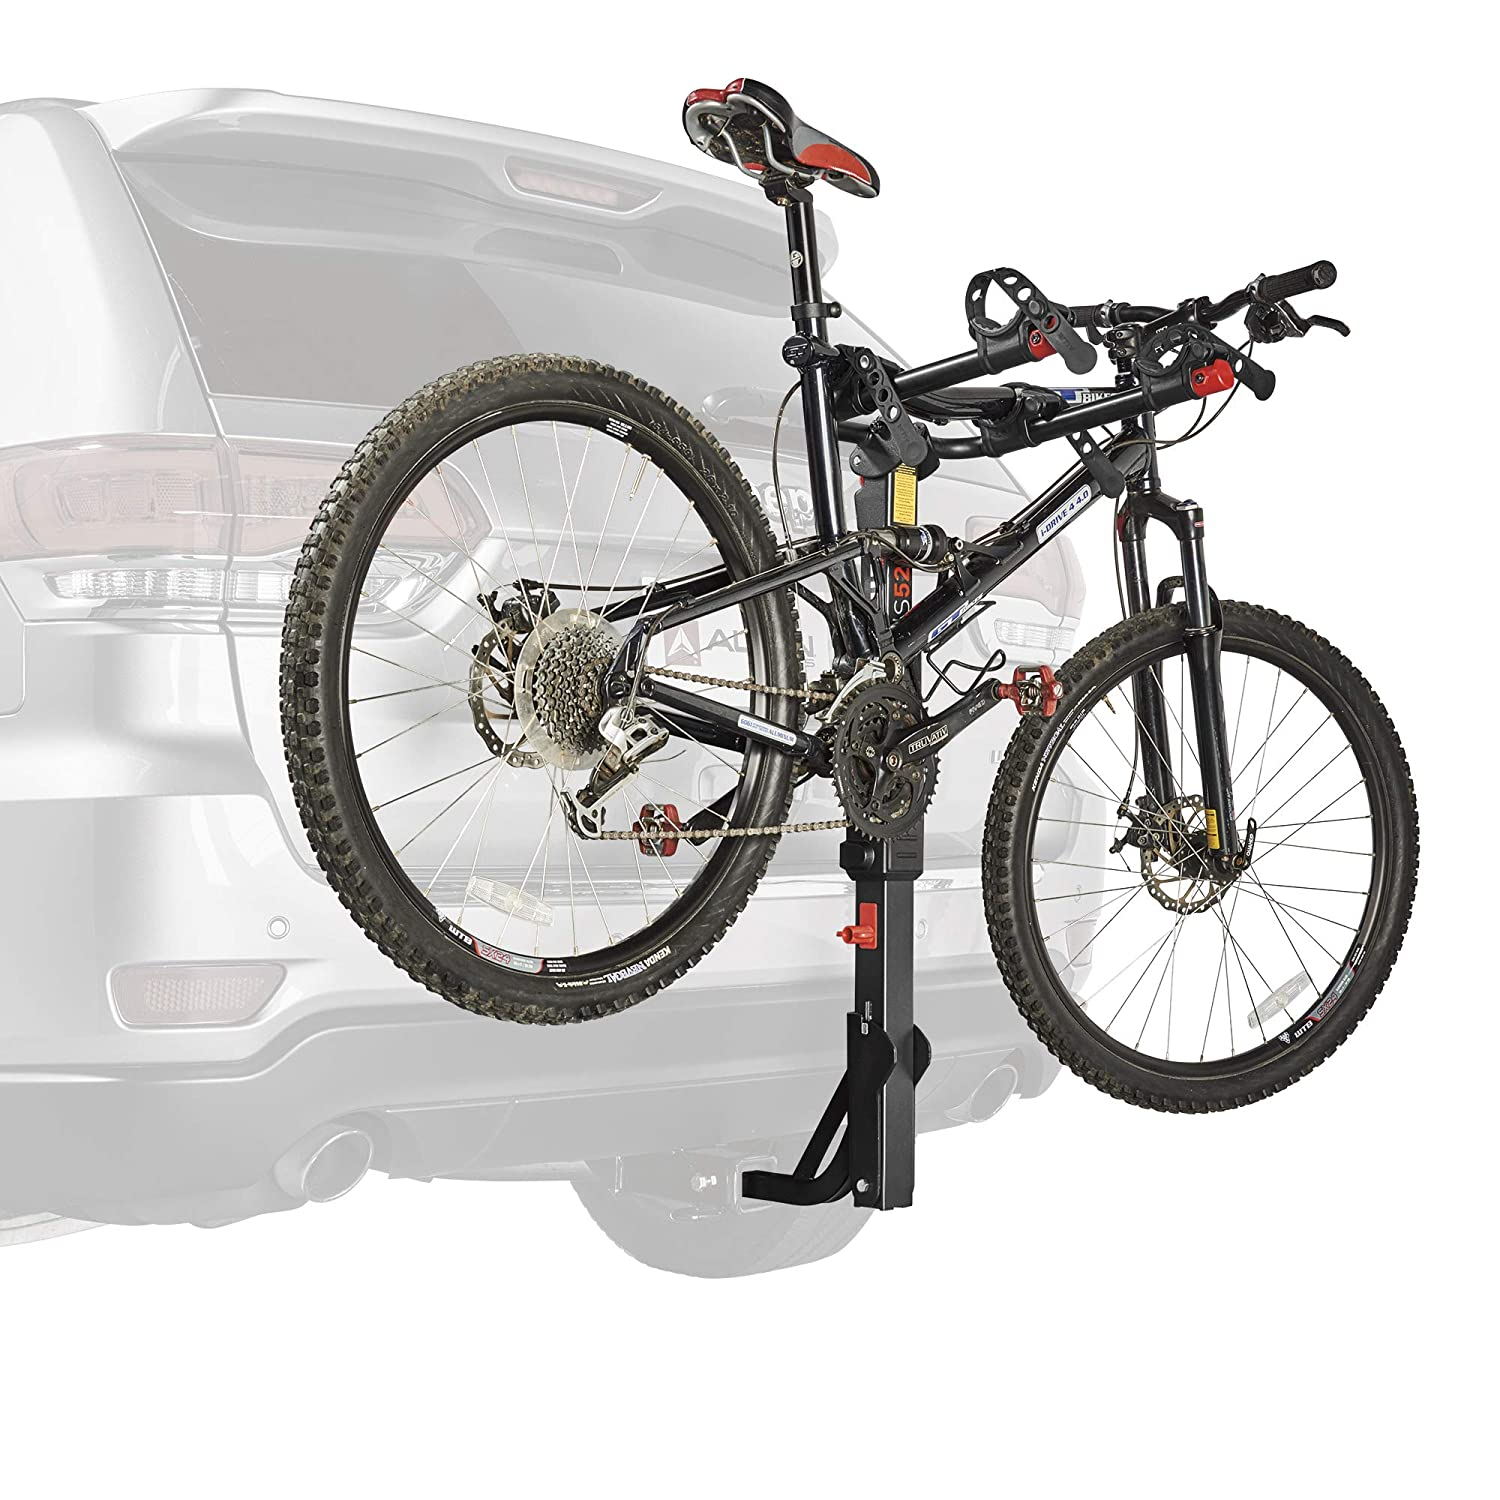 Vehicle Bicycle Rack Amazon.com : Allen Sports Premier Hitch Mounted 2-Bike Carrier : Automotive  Bike Racks : Automotive